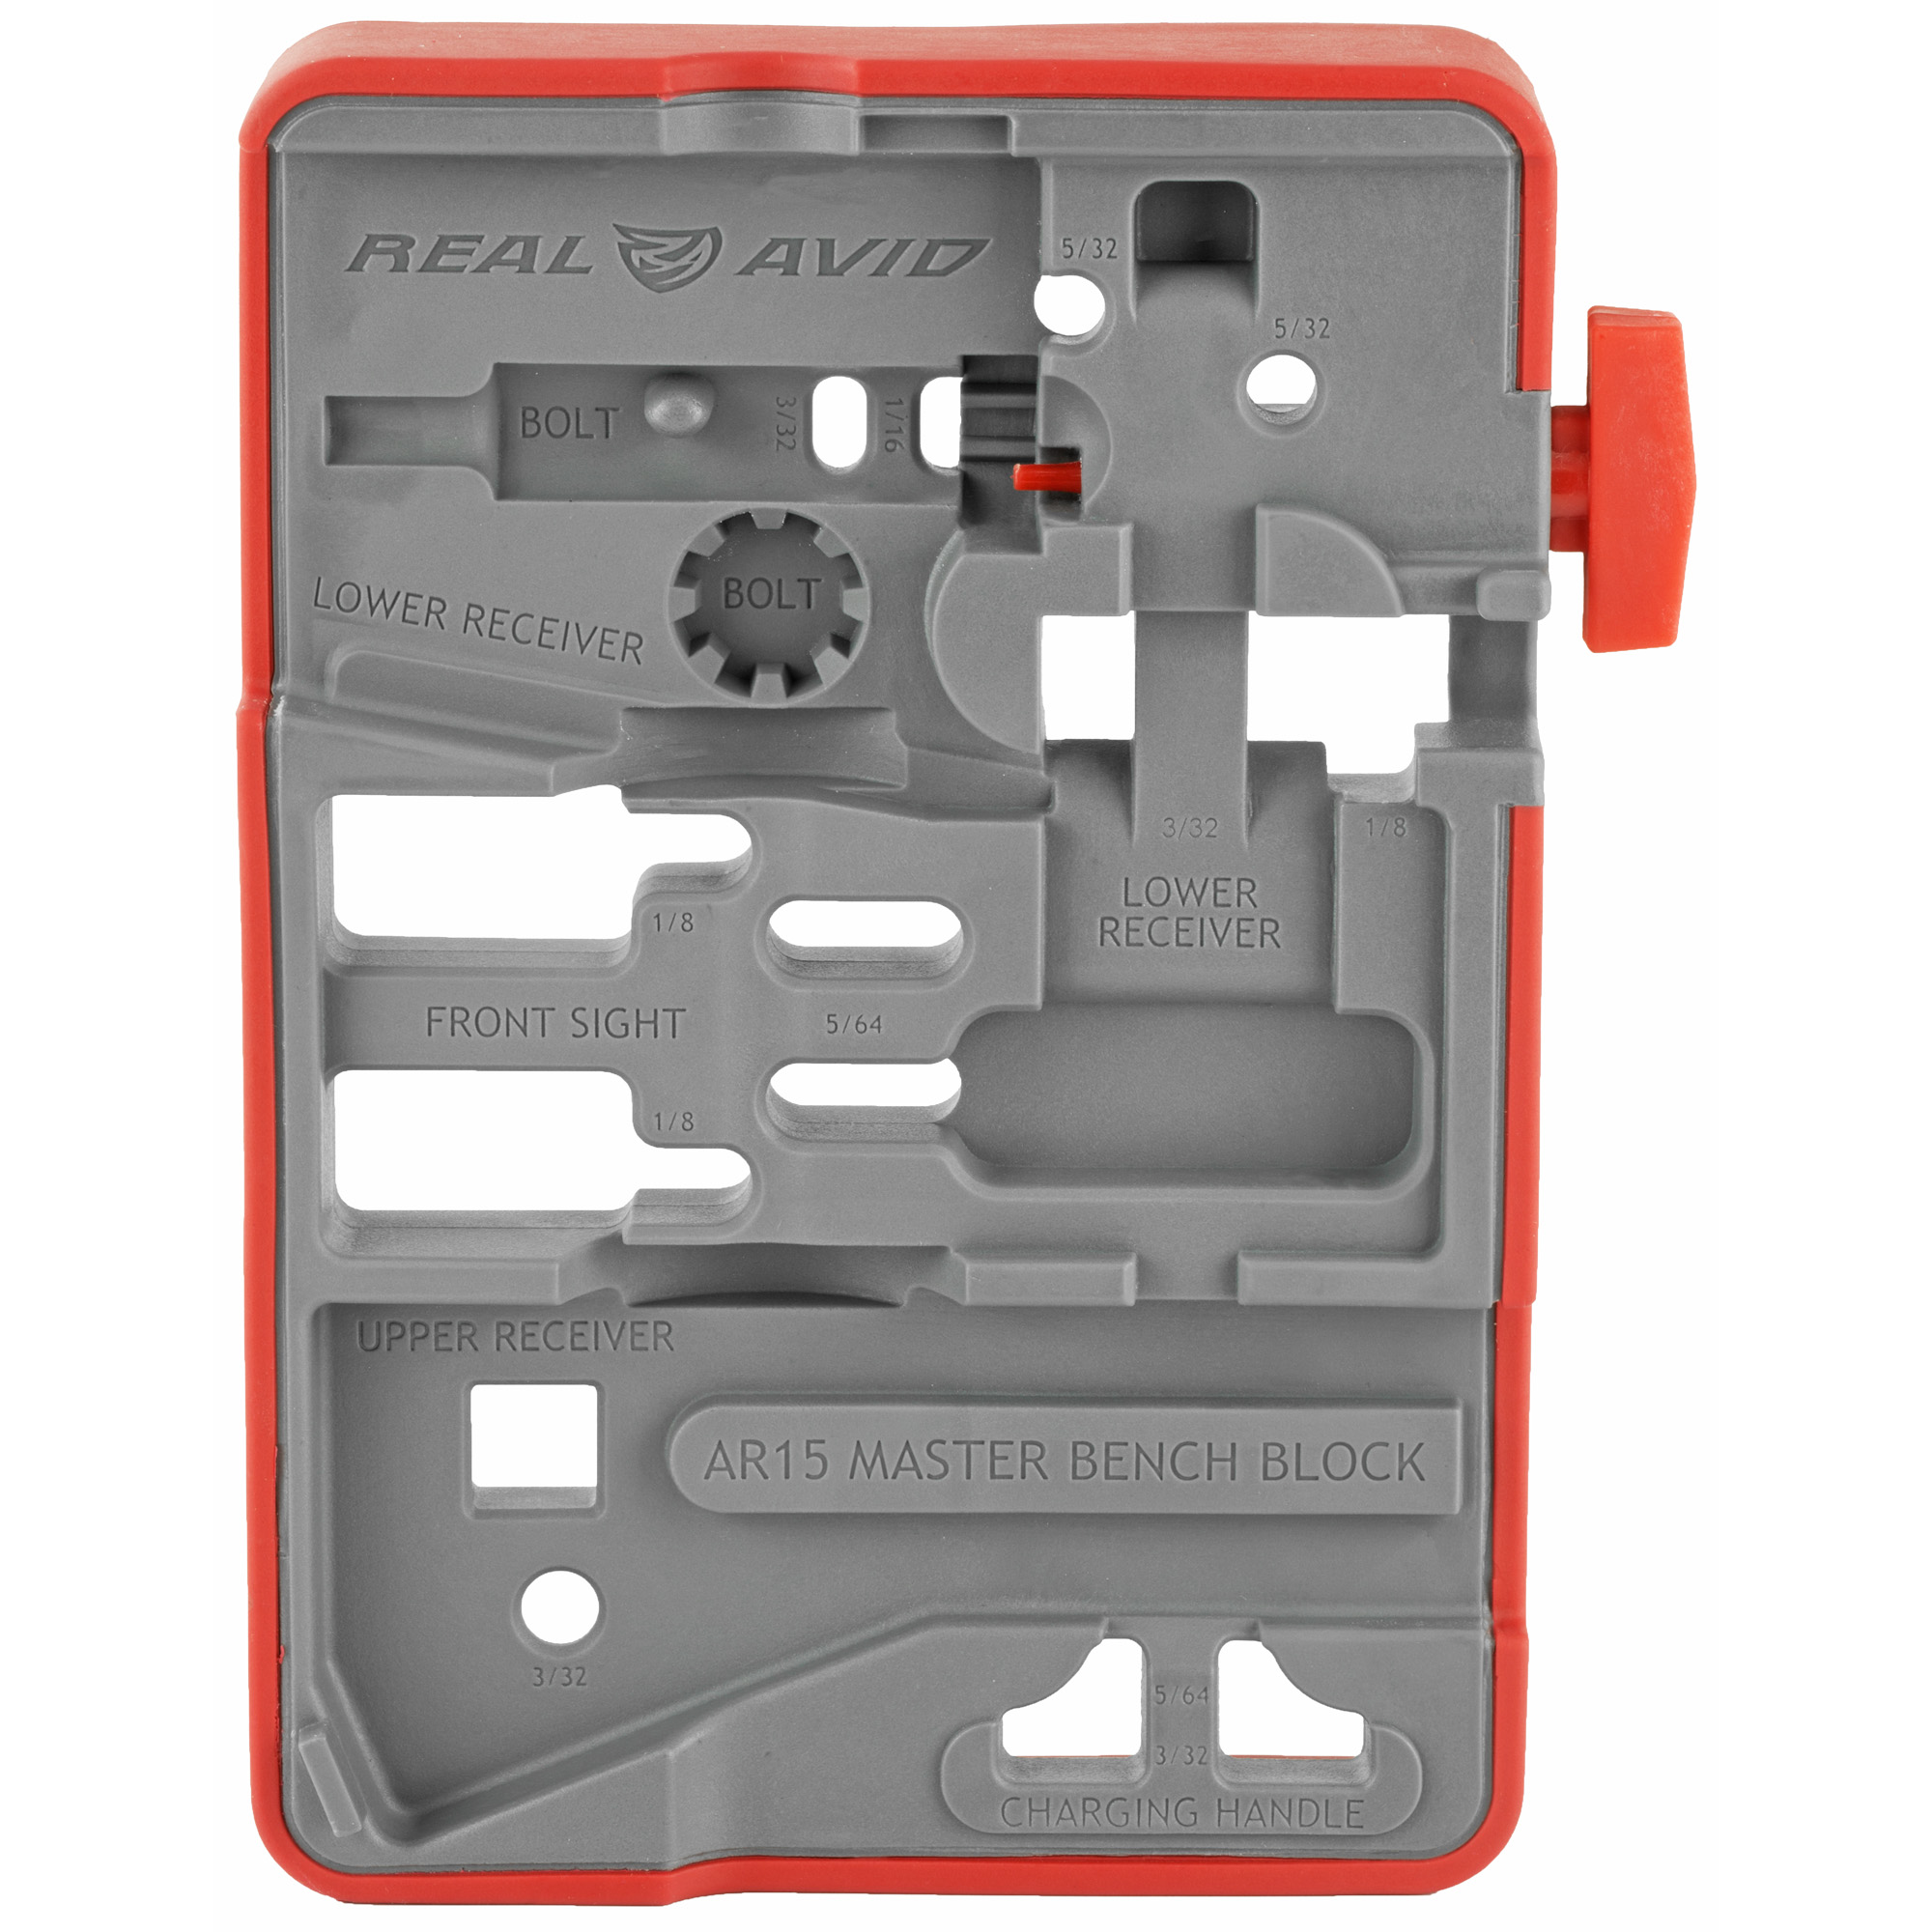 "The most comprehensive AR15 bench block ever allows you to tap 13 critical pins from 5 different components. The block is wrapped in an over-molding that grips to your bench to prevent slippage. Plus"" engraved on the ultra-tough engineering grade surface are clear component labels marked with pin punch sizes to make determining what component to place where and what pins to use"" simple. On the backside of the block"" to capture pins and keep them from rolling away"" are embedded magnets and"" to keep your pins from getting lost"" a pin storage section is included."